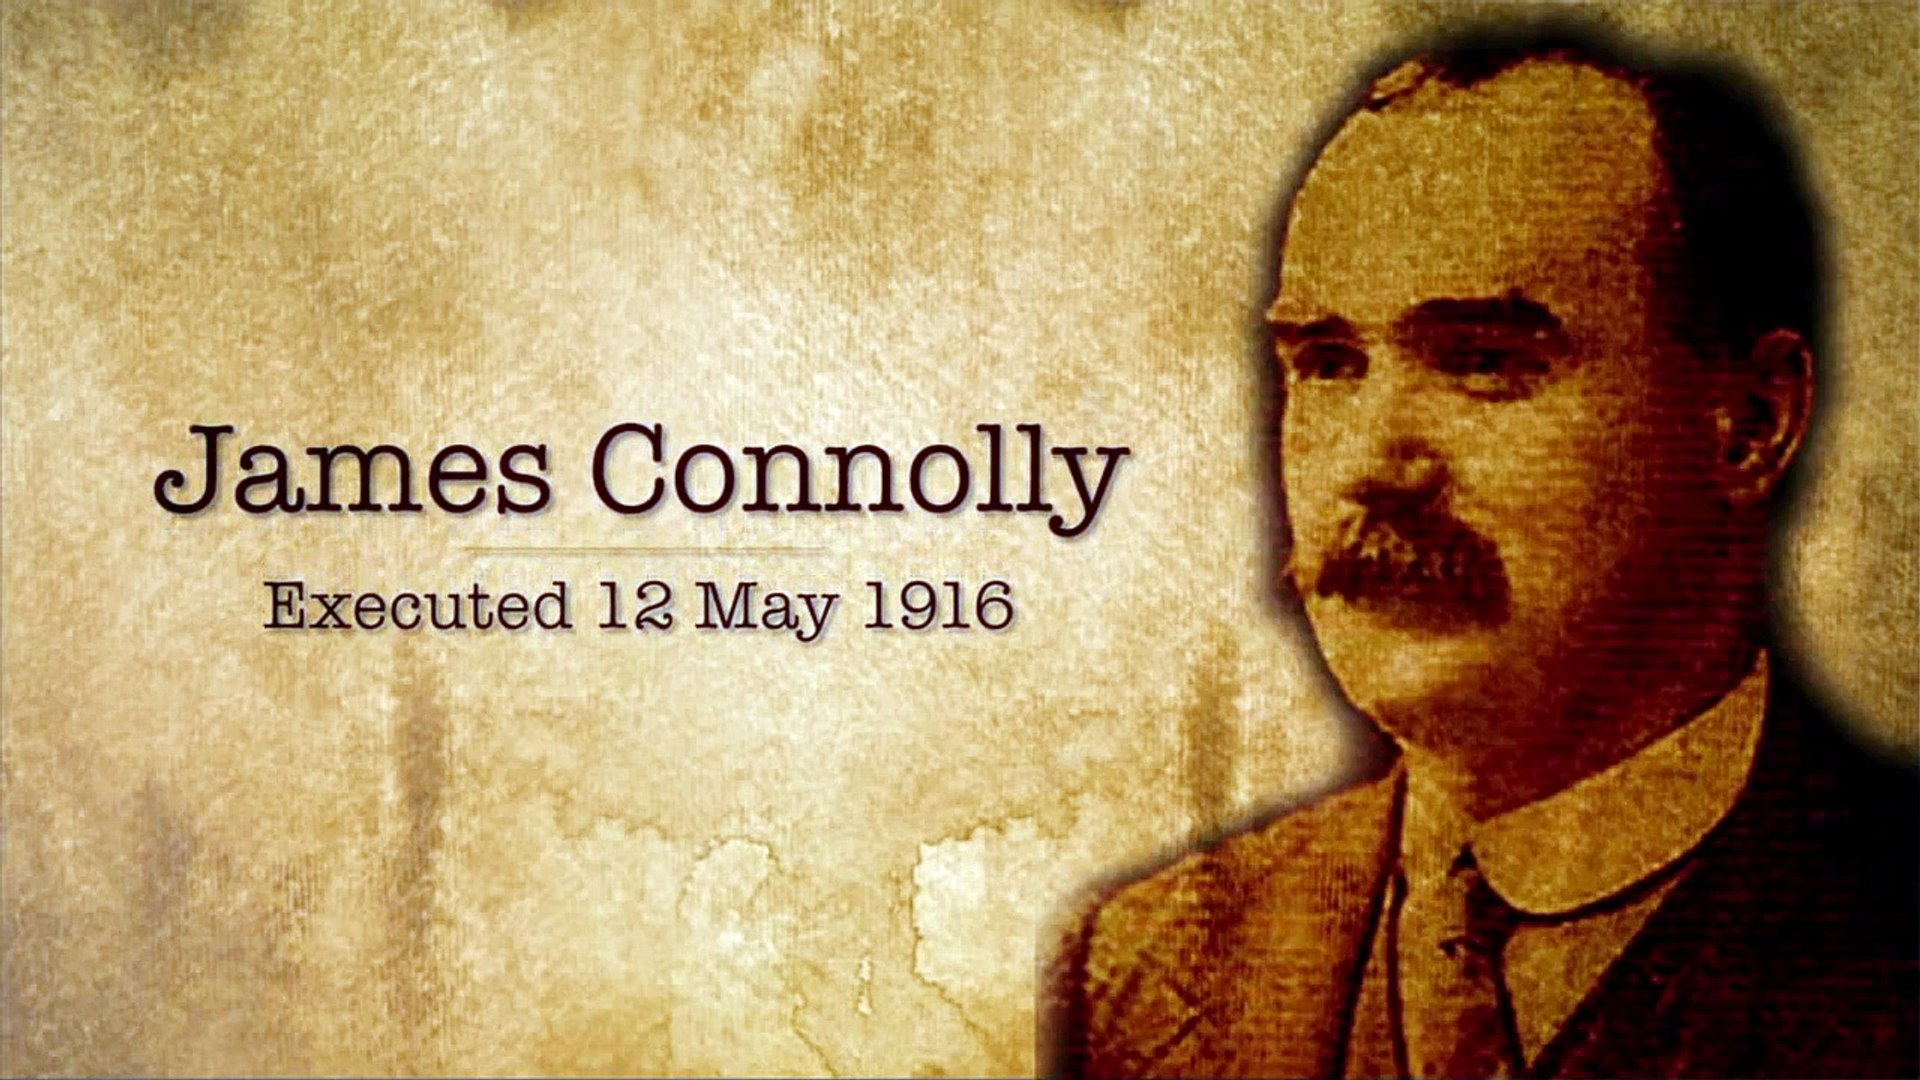 1916 Inspires – A response to Irish government '1916' video